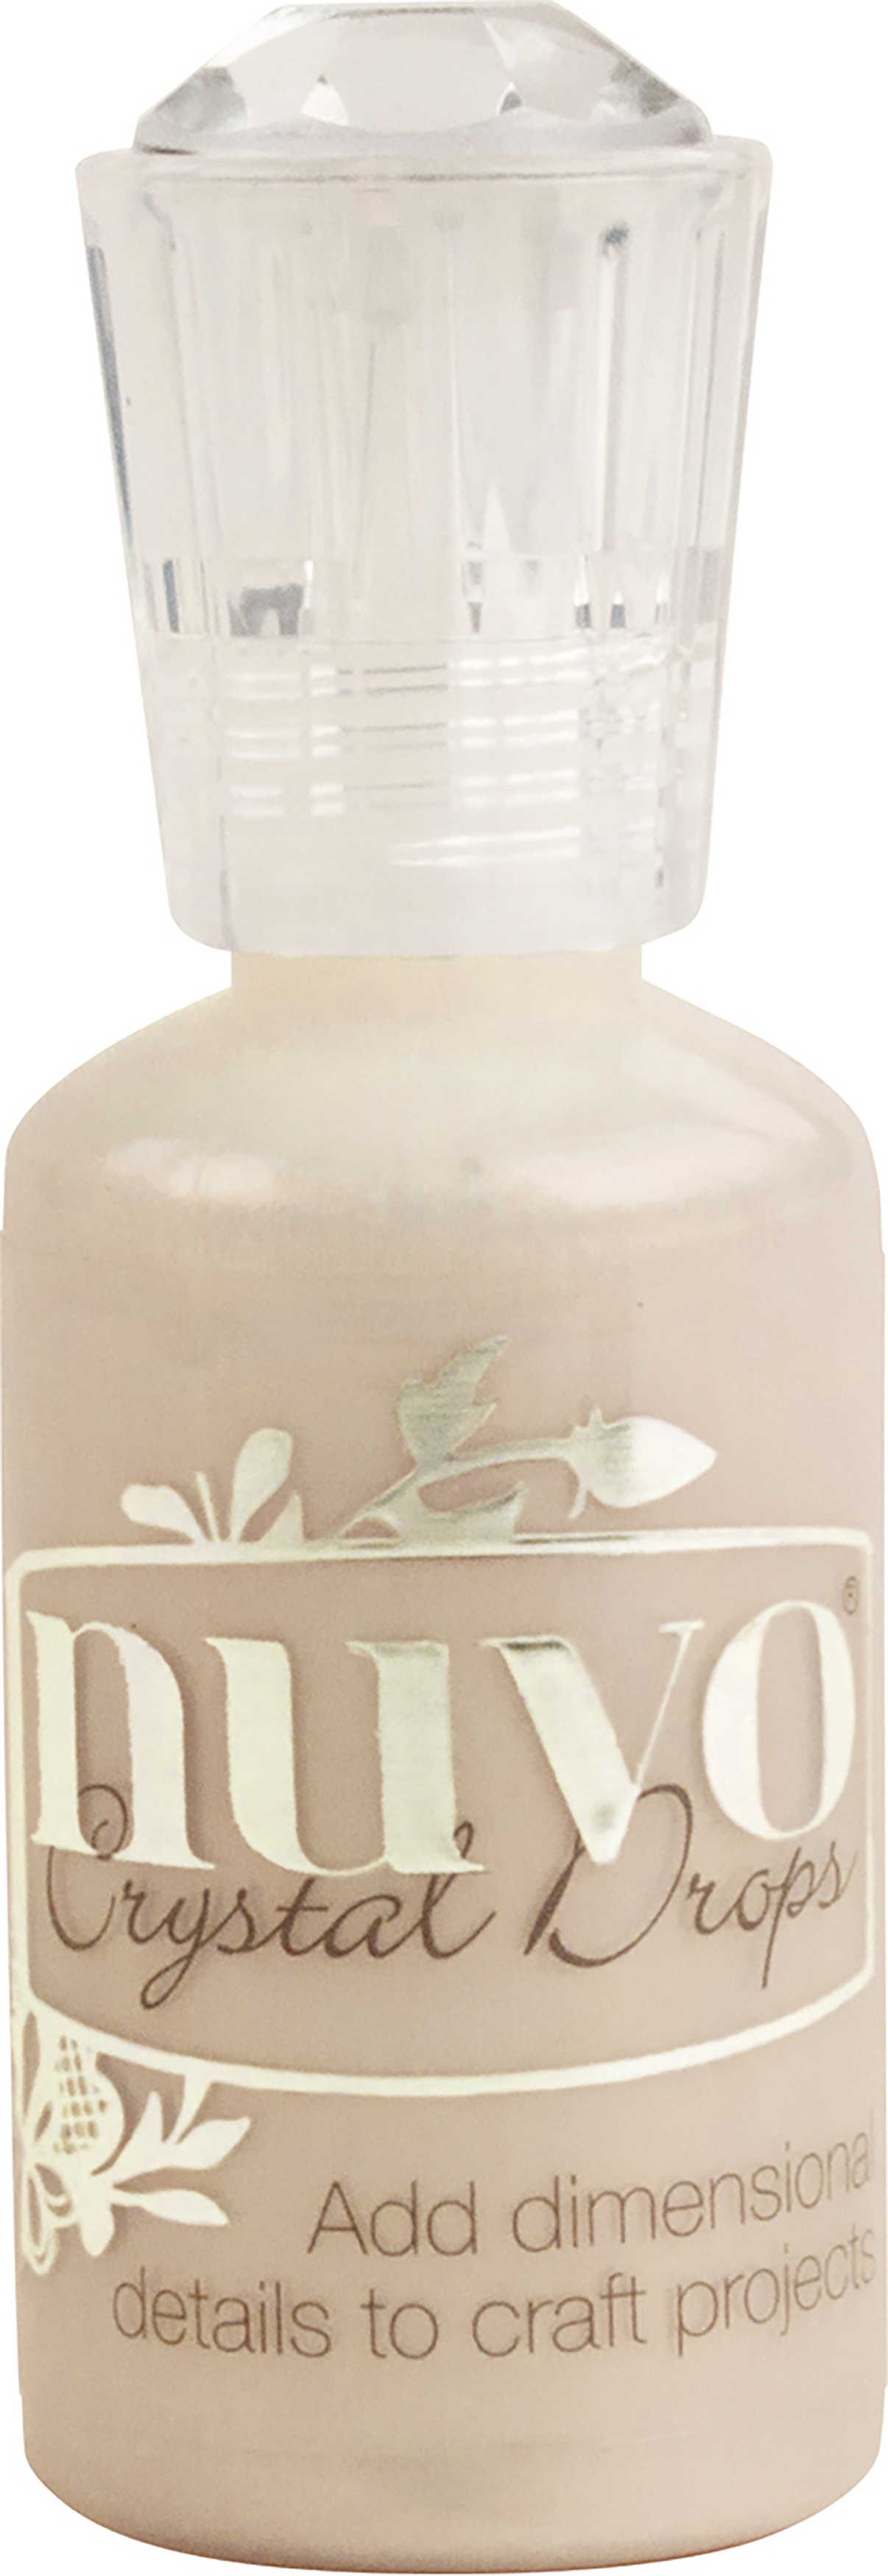 Nuvo Crystal Drops 1.1oz-Caramel Cream